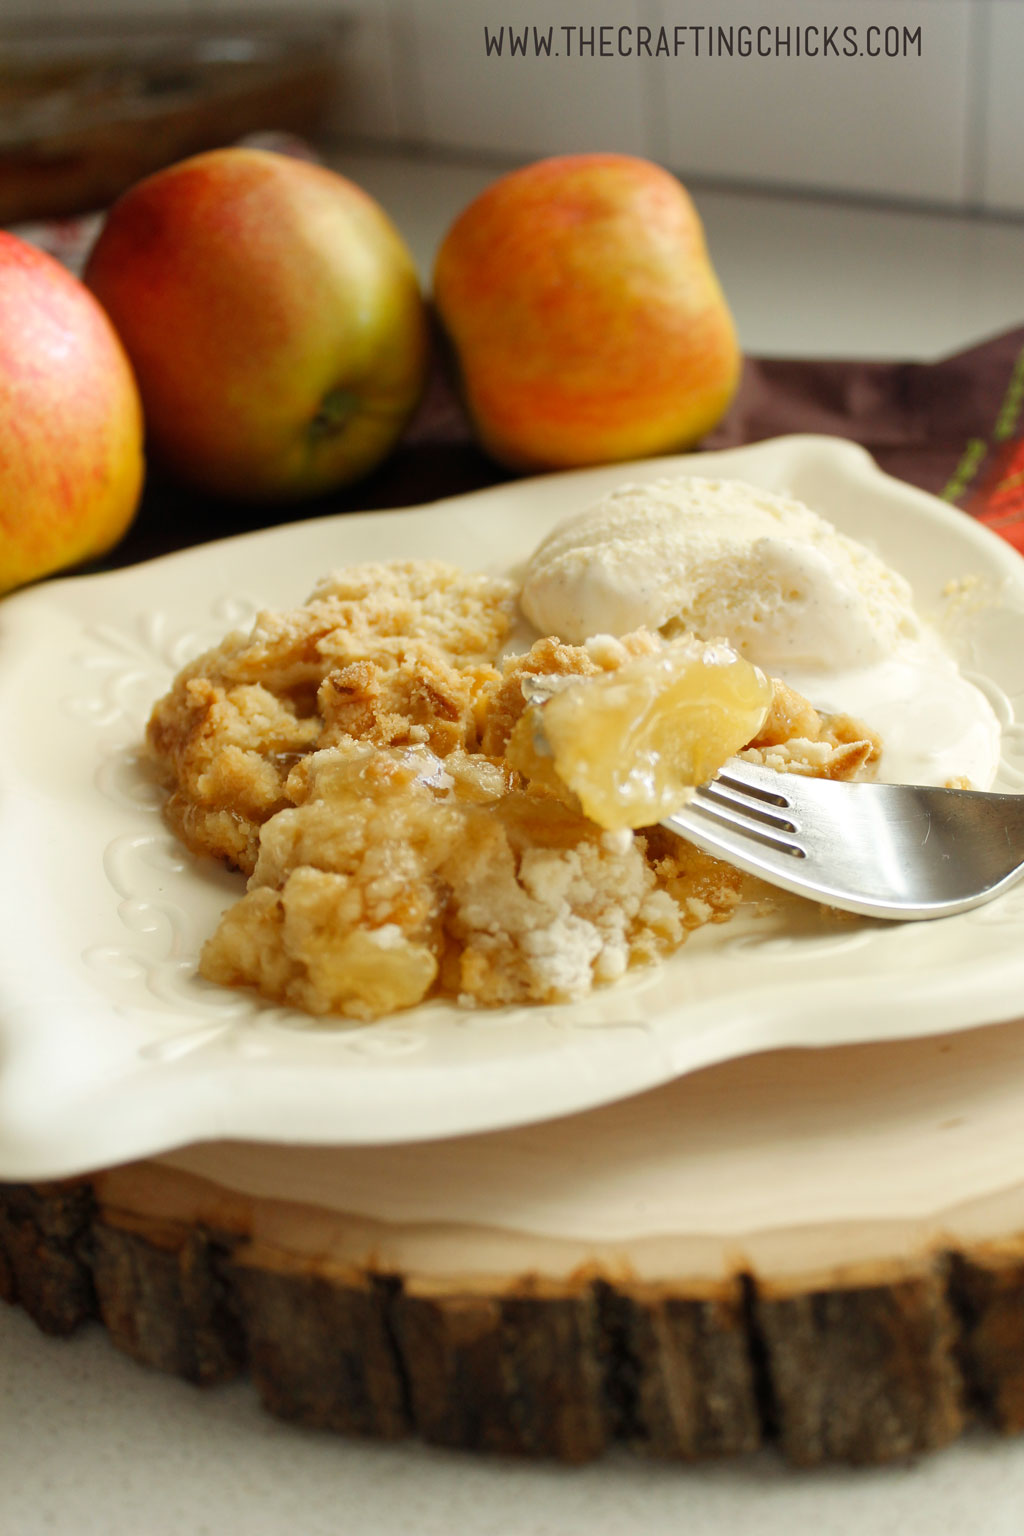 Delicious Apple Cobbler Dessert